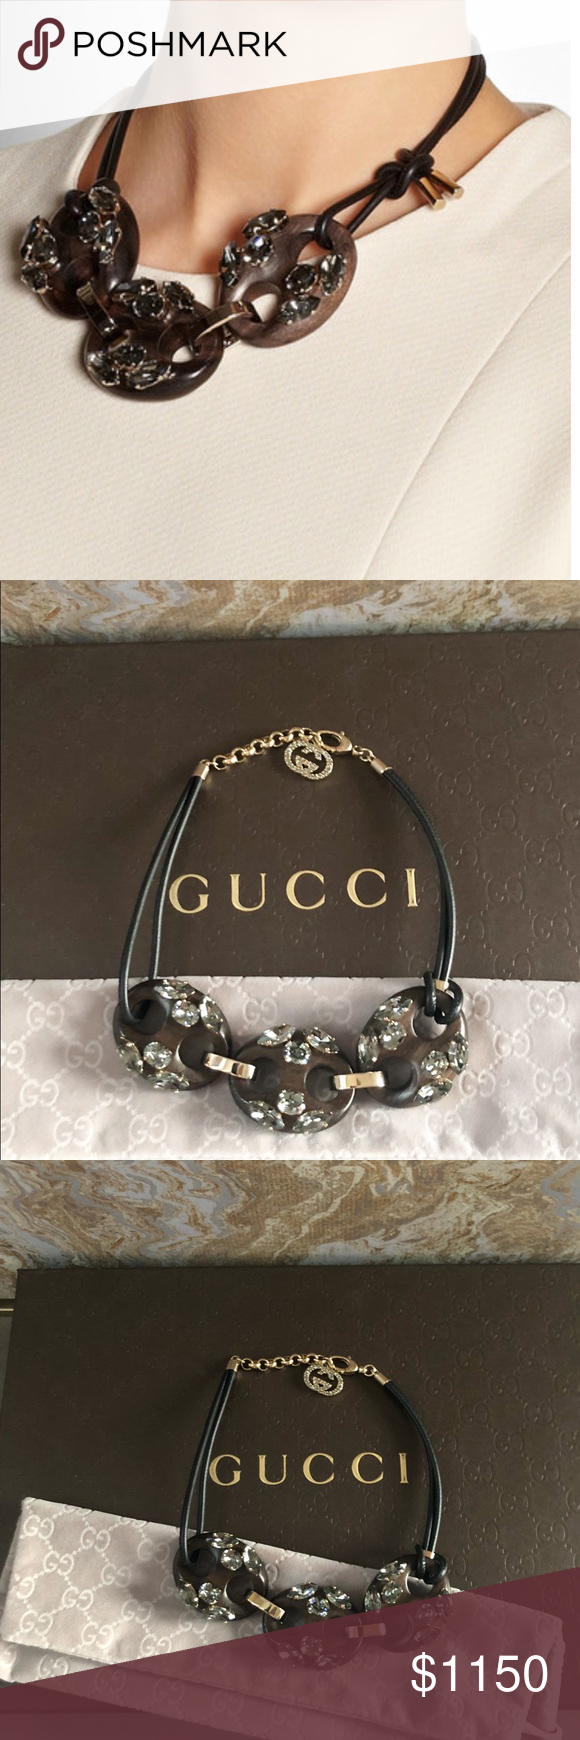 885b21efb Gucci Marina Crystal Embellished Wood Tie Necklace Rare Gorgeous authentic  Gucci statement necklace. Featuring gold